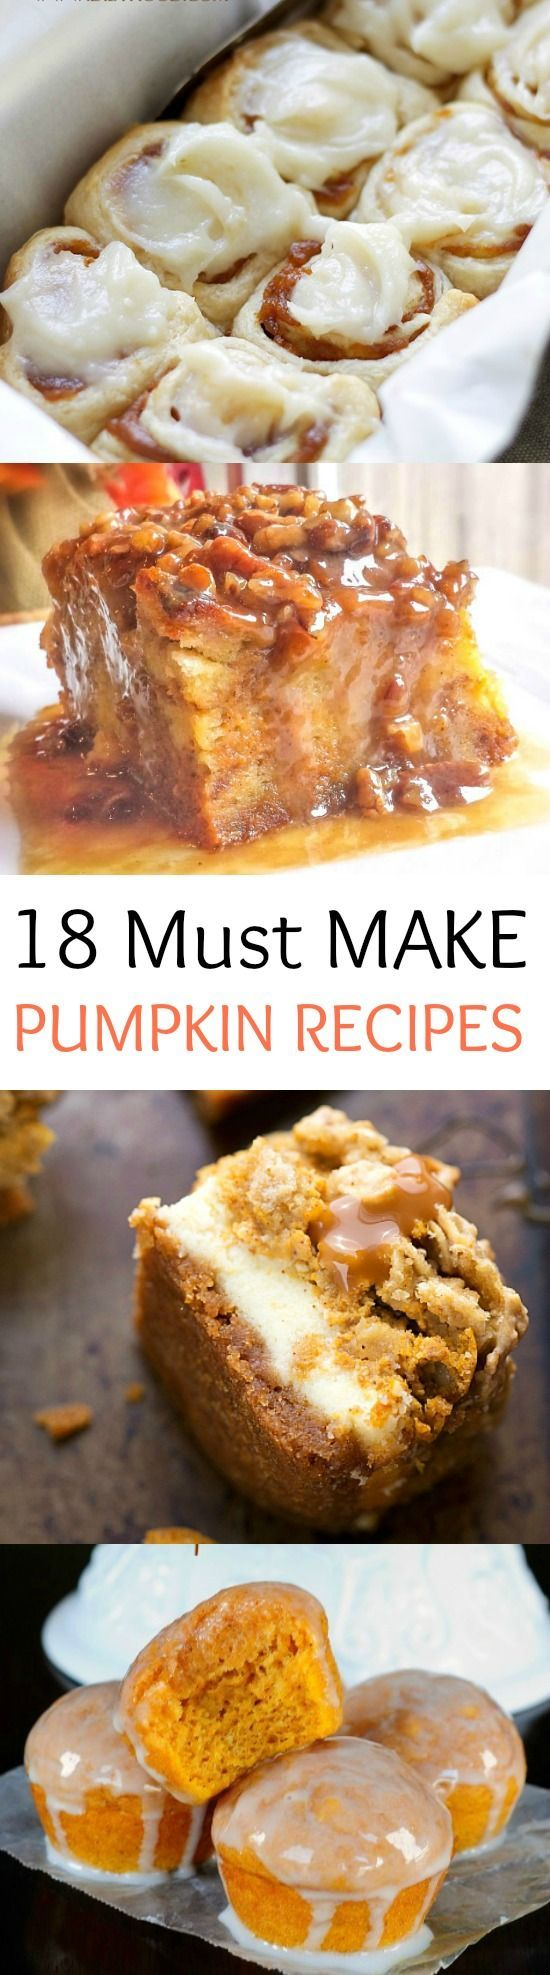 The Most Spectacular Pumpkin Recipes EVER! Thanksgiving Desserts Christmas…